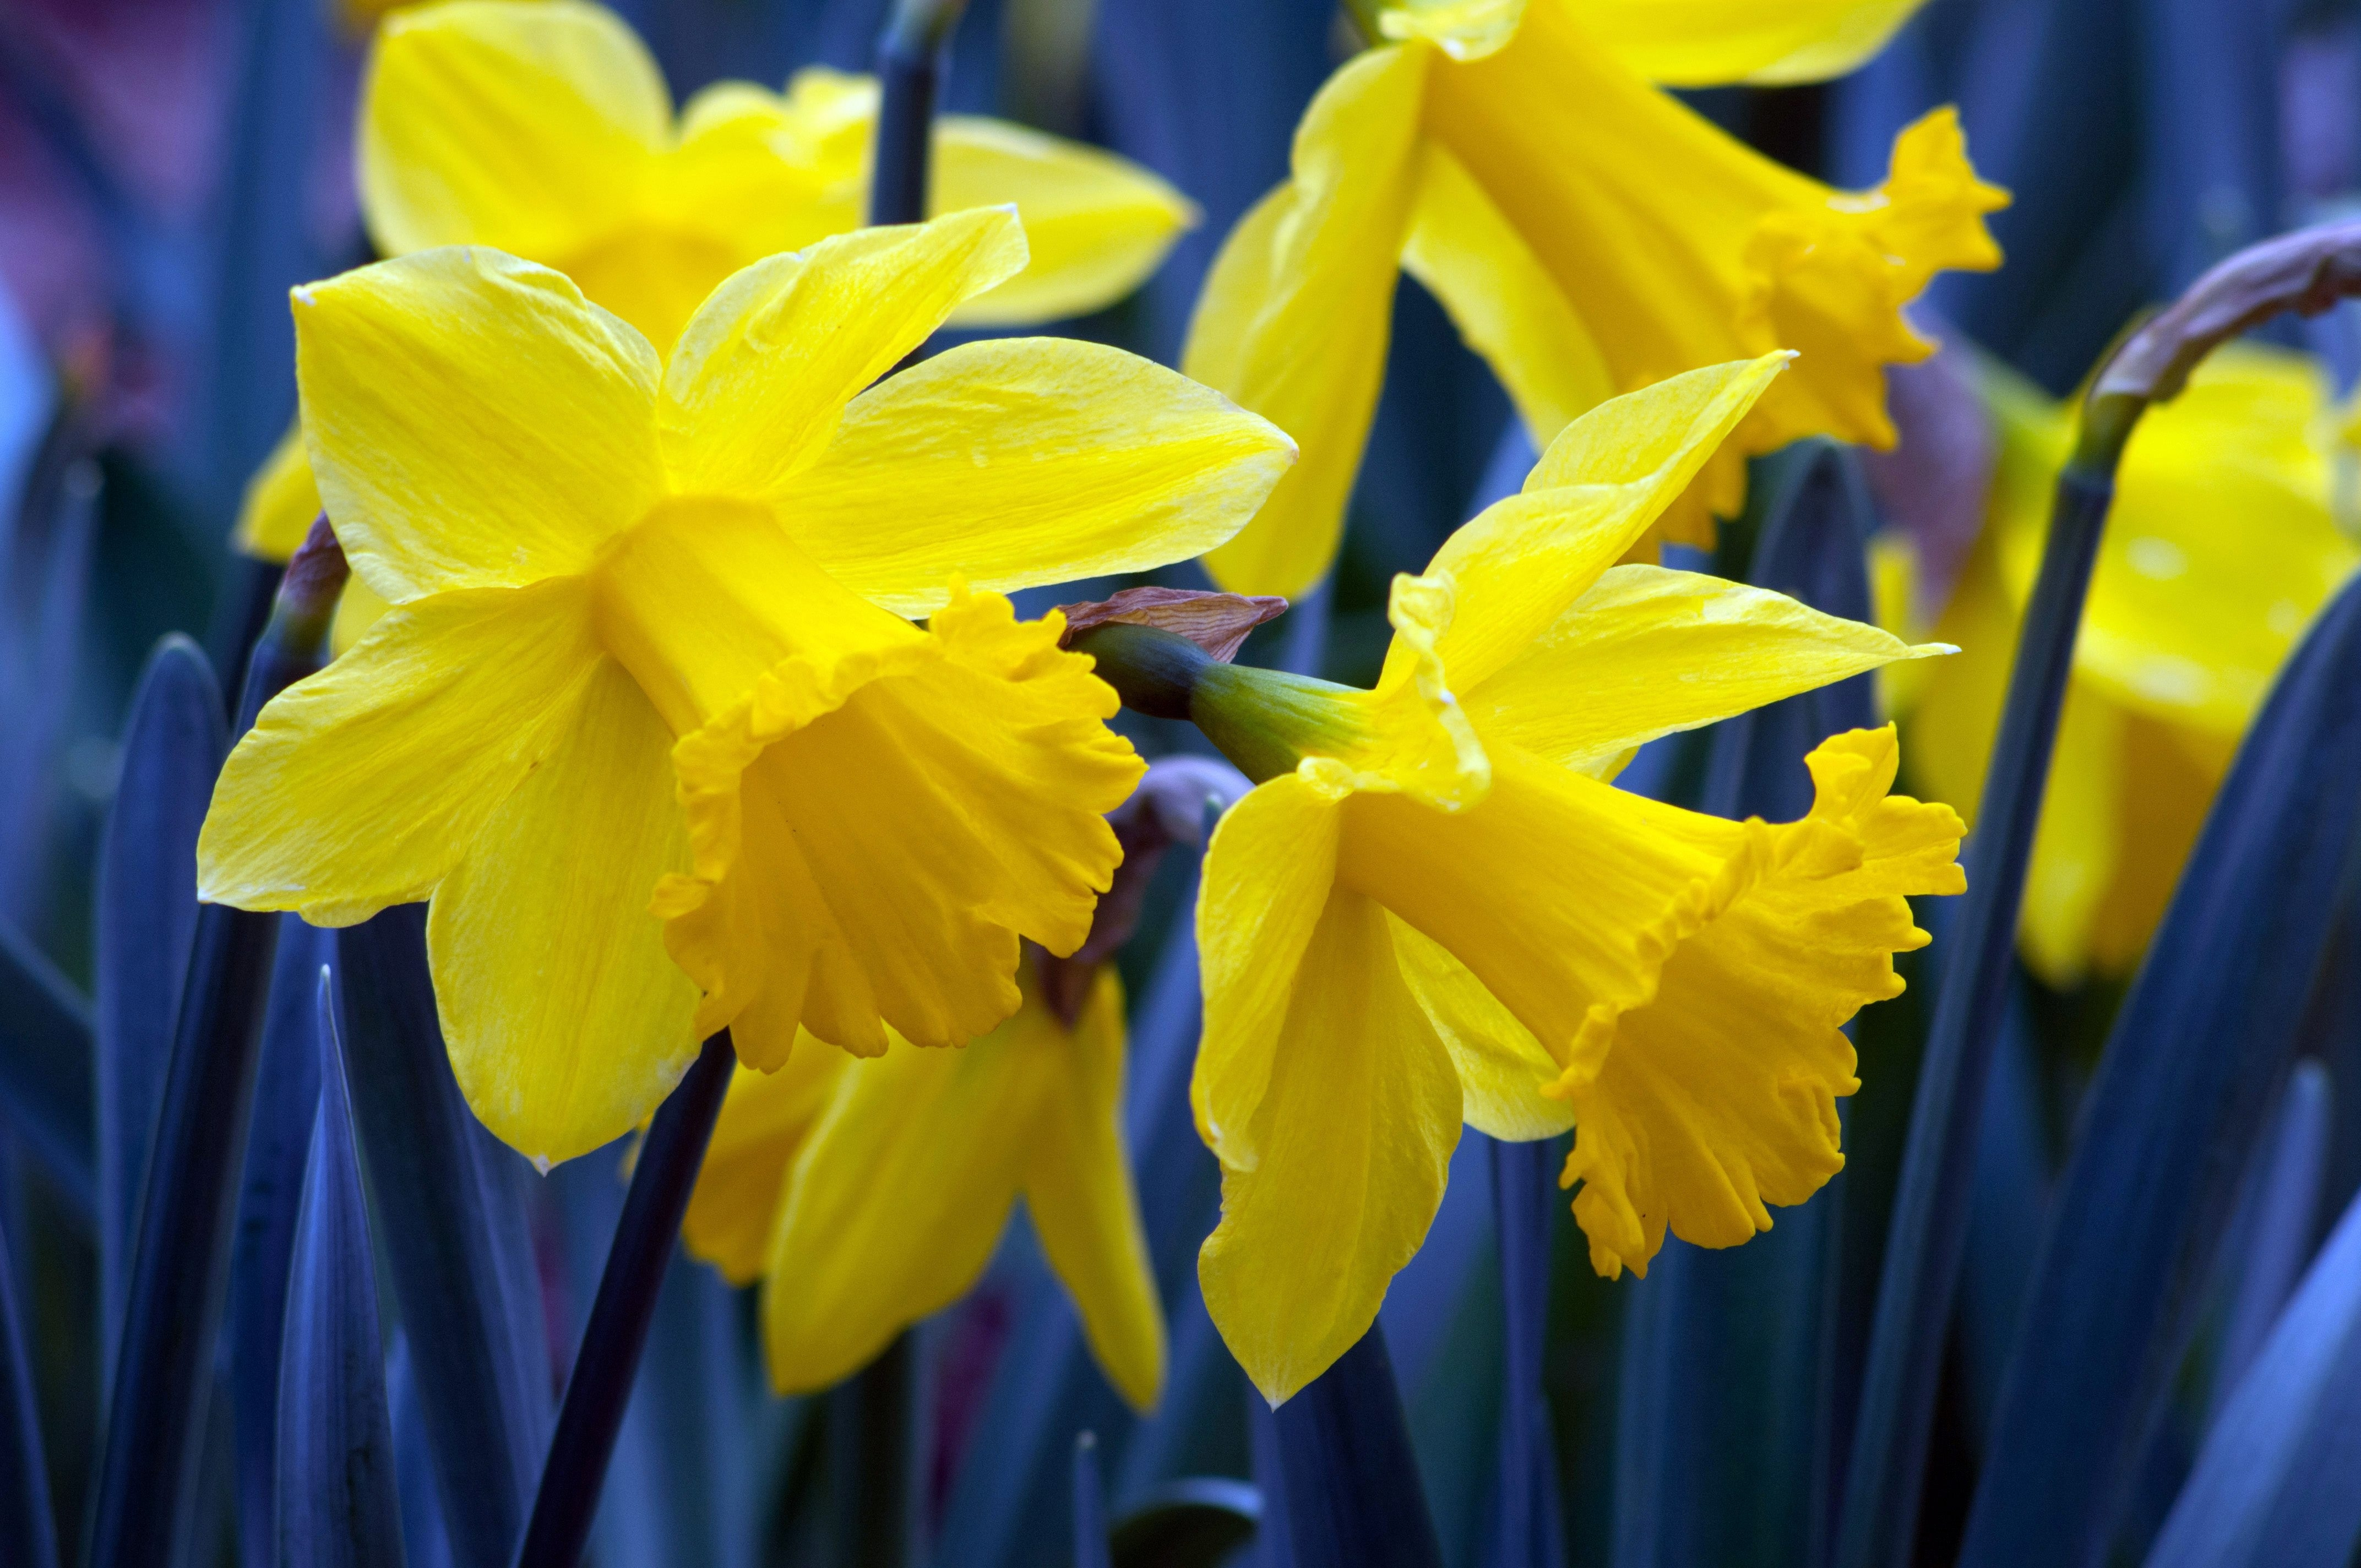 For a colorful spring garden nows the time to plant bulbs the narcissus golden harvest is an old timer nearly 100 years old izmirmasajfo